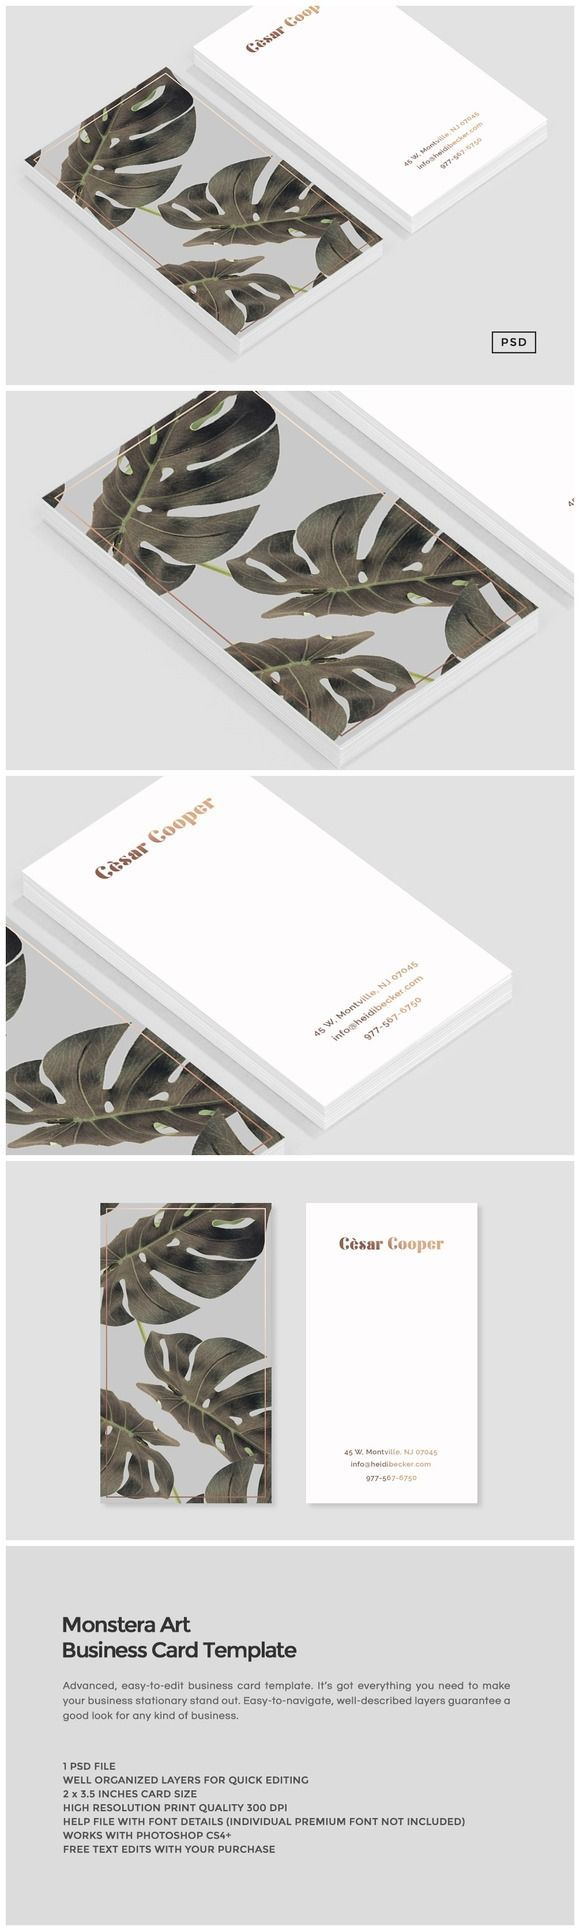 Monstera Art Business Card Template by Design Co. on @creativemarket